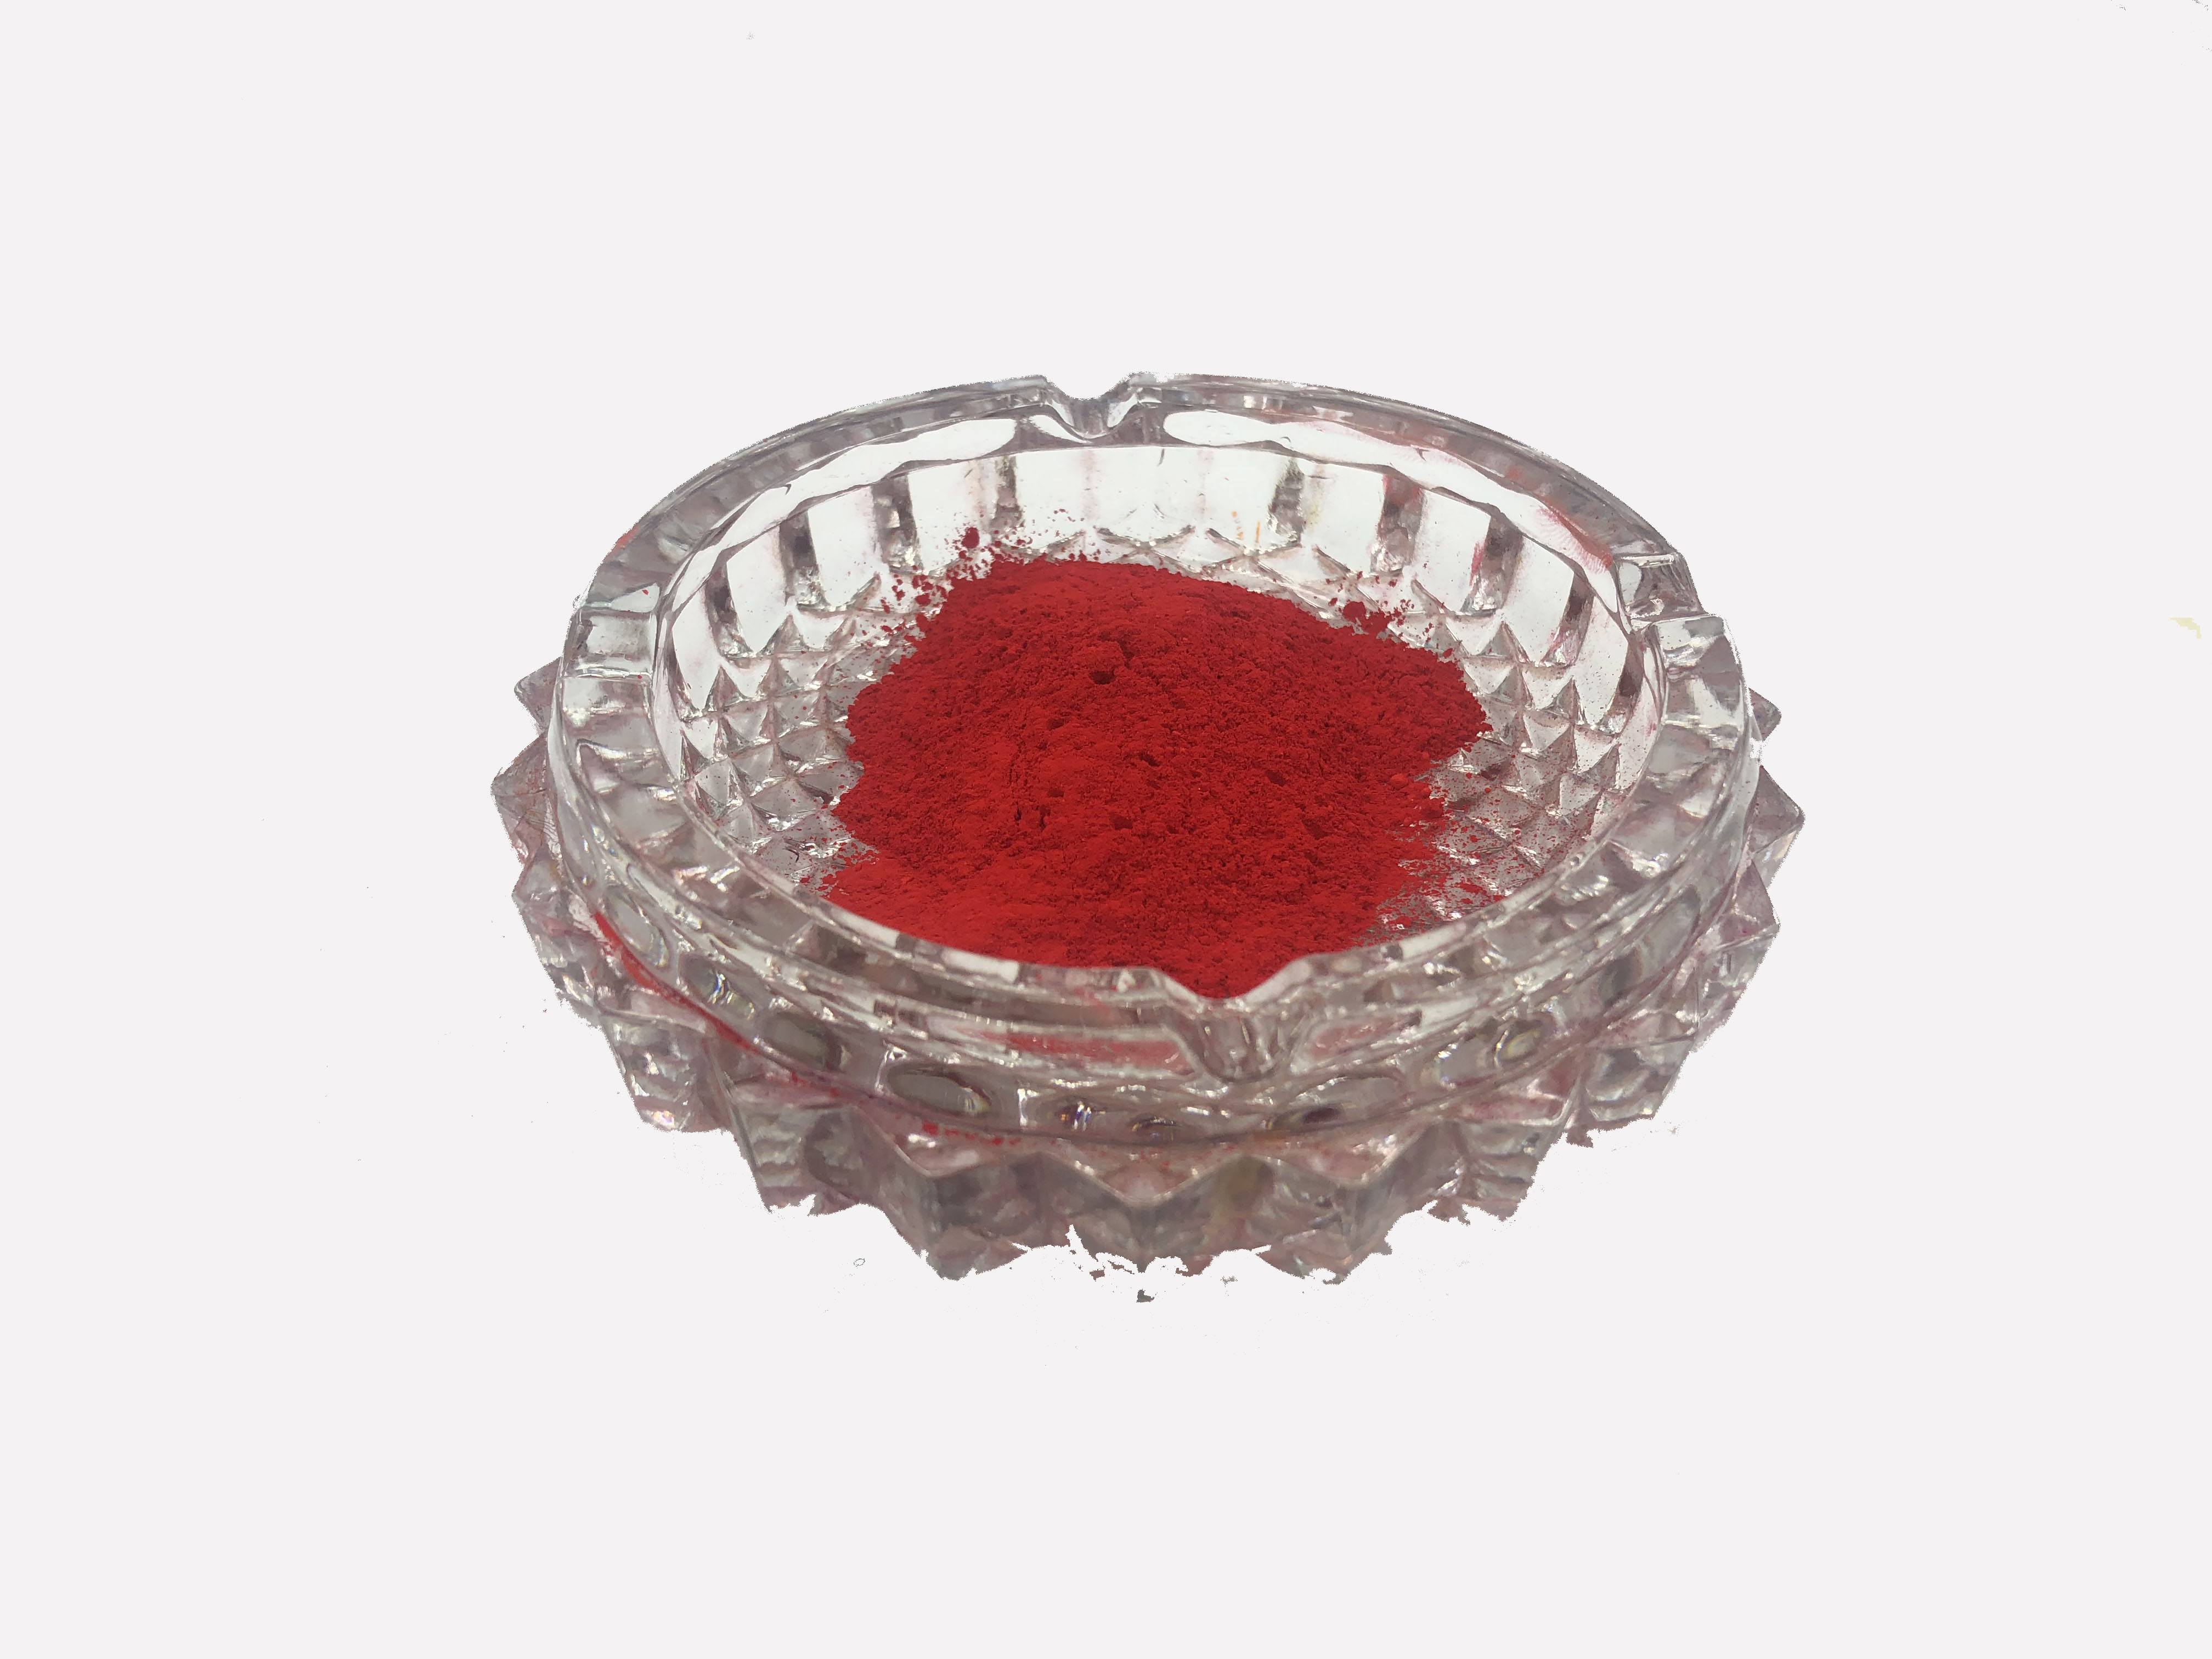 Red Color Translucent Organic Pigment Factory Directly Supply With SGS Report